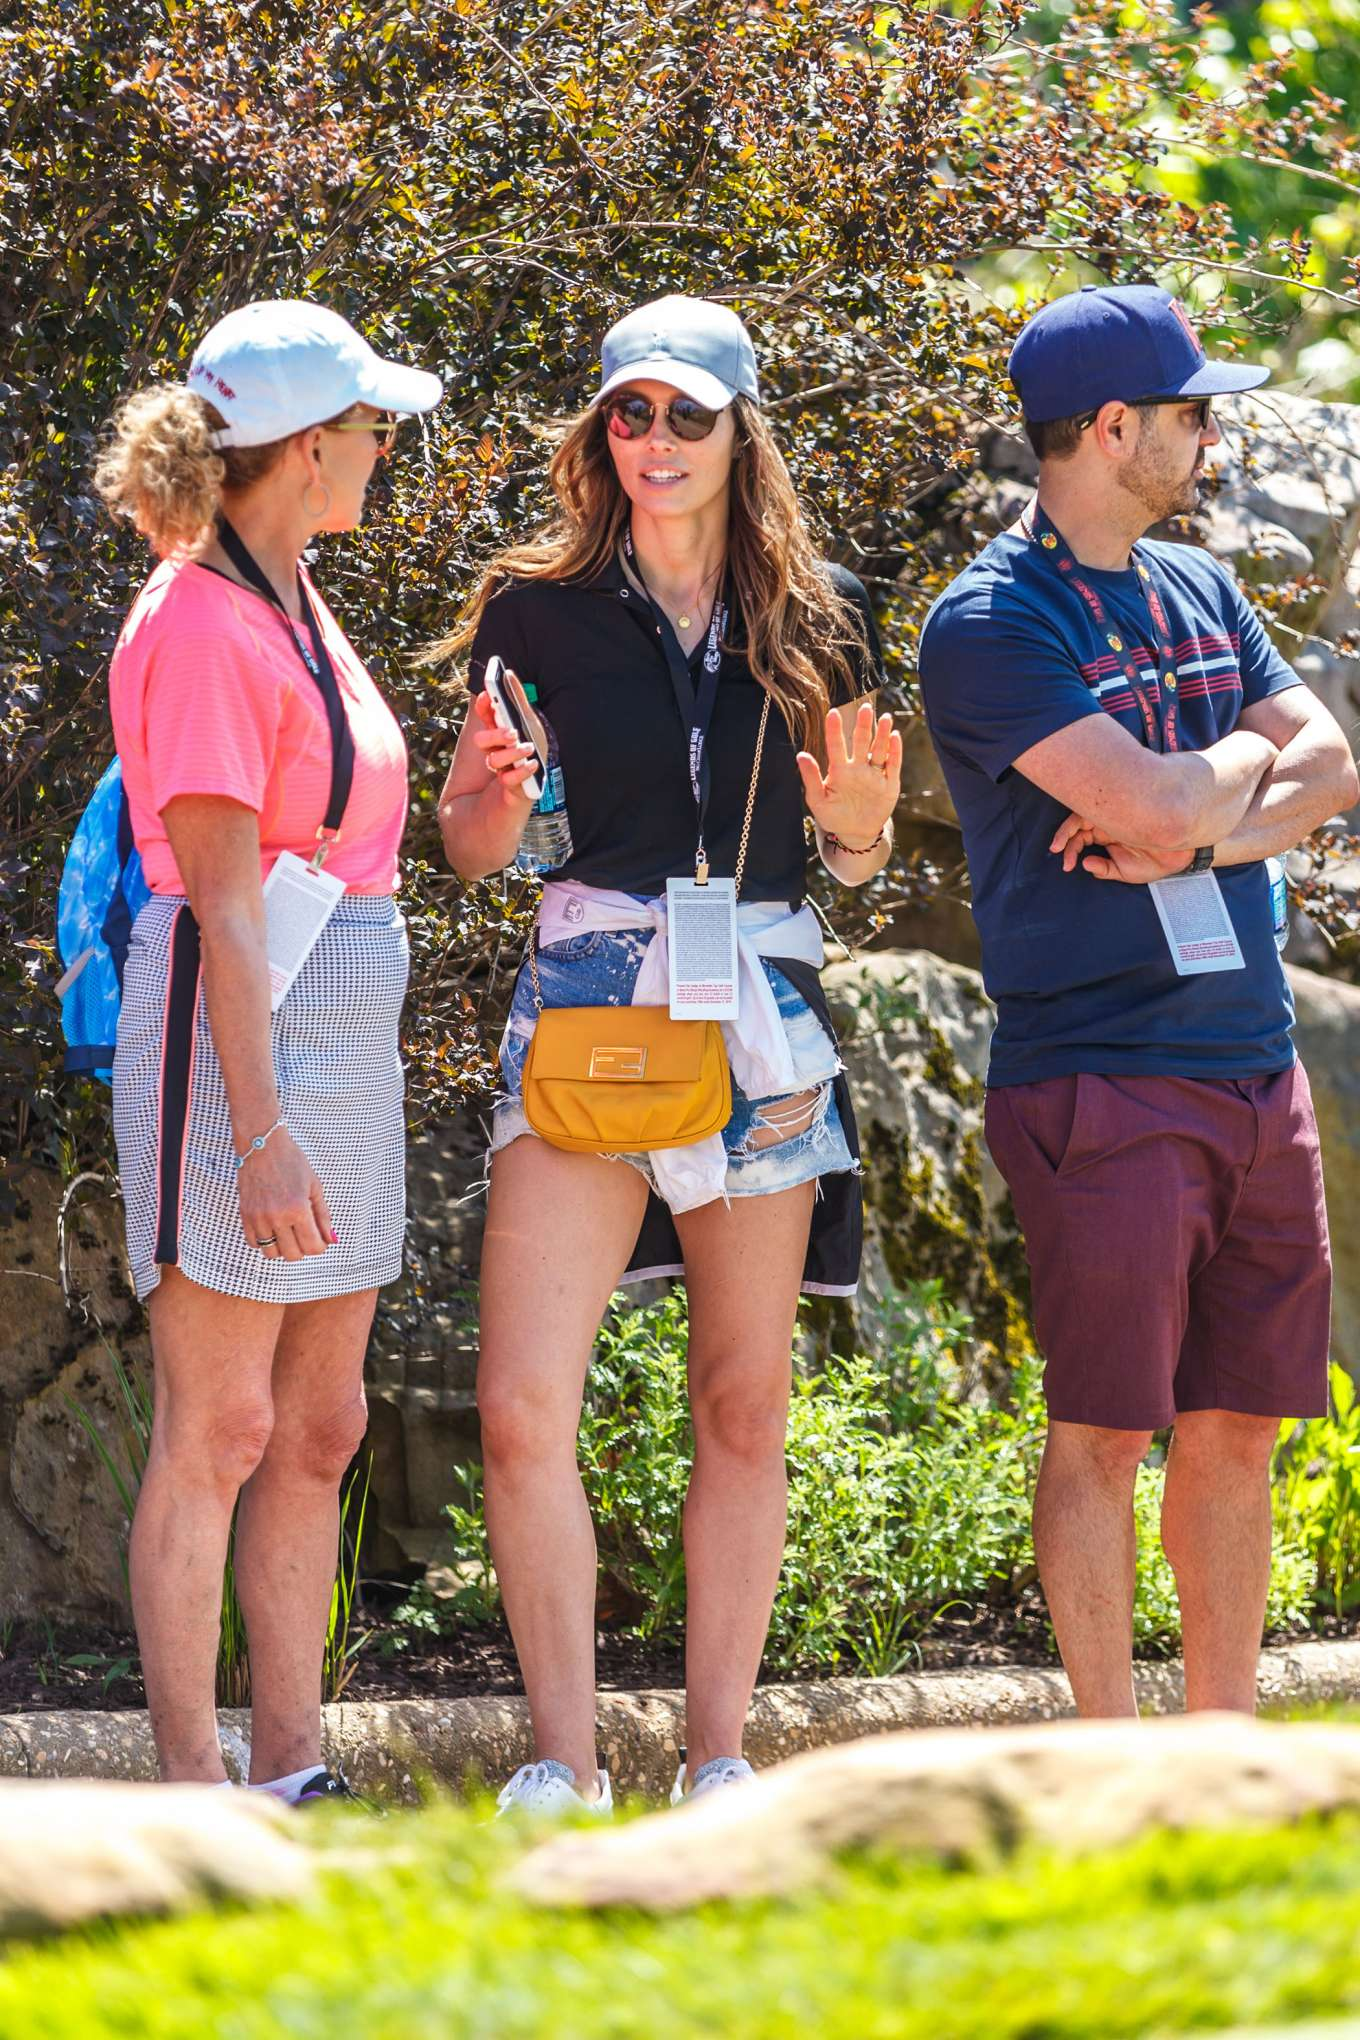 Jessica Biel at the Bass Pro Shops Legends of Golf Tournament in Ridgedale